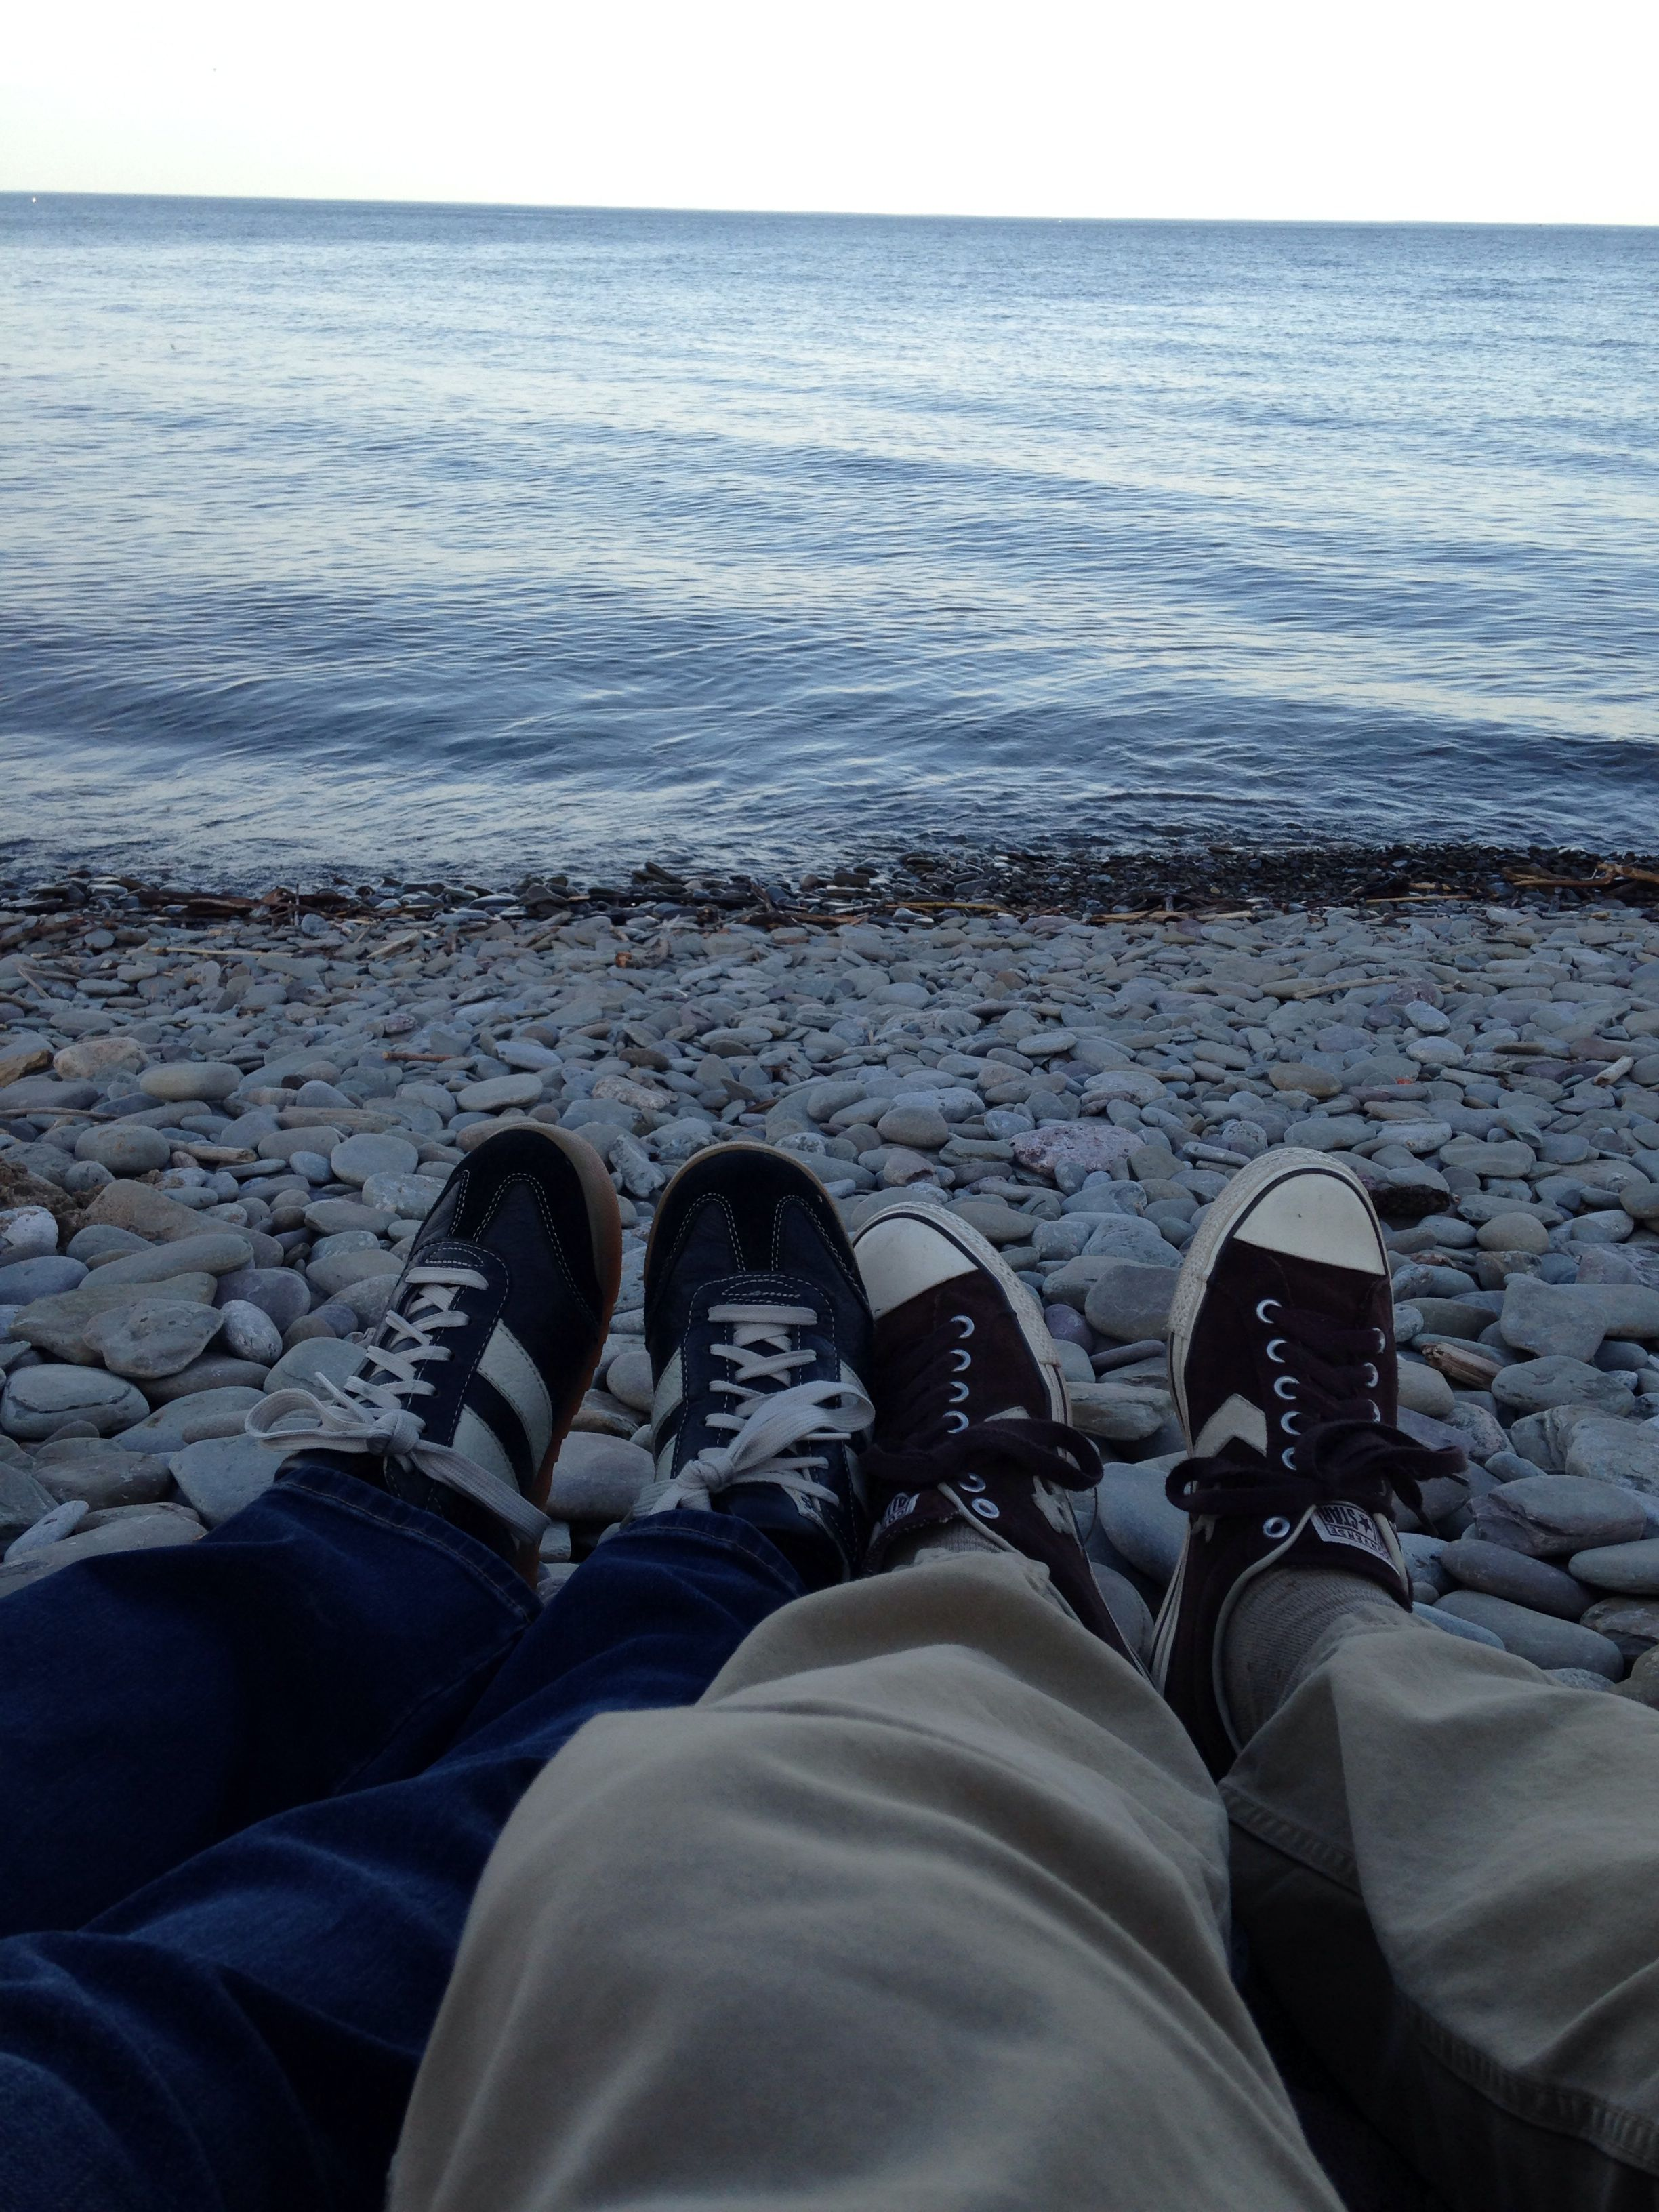 Chillin' out on Lake Ontario